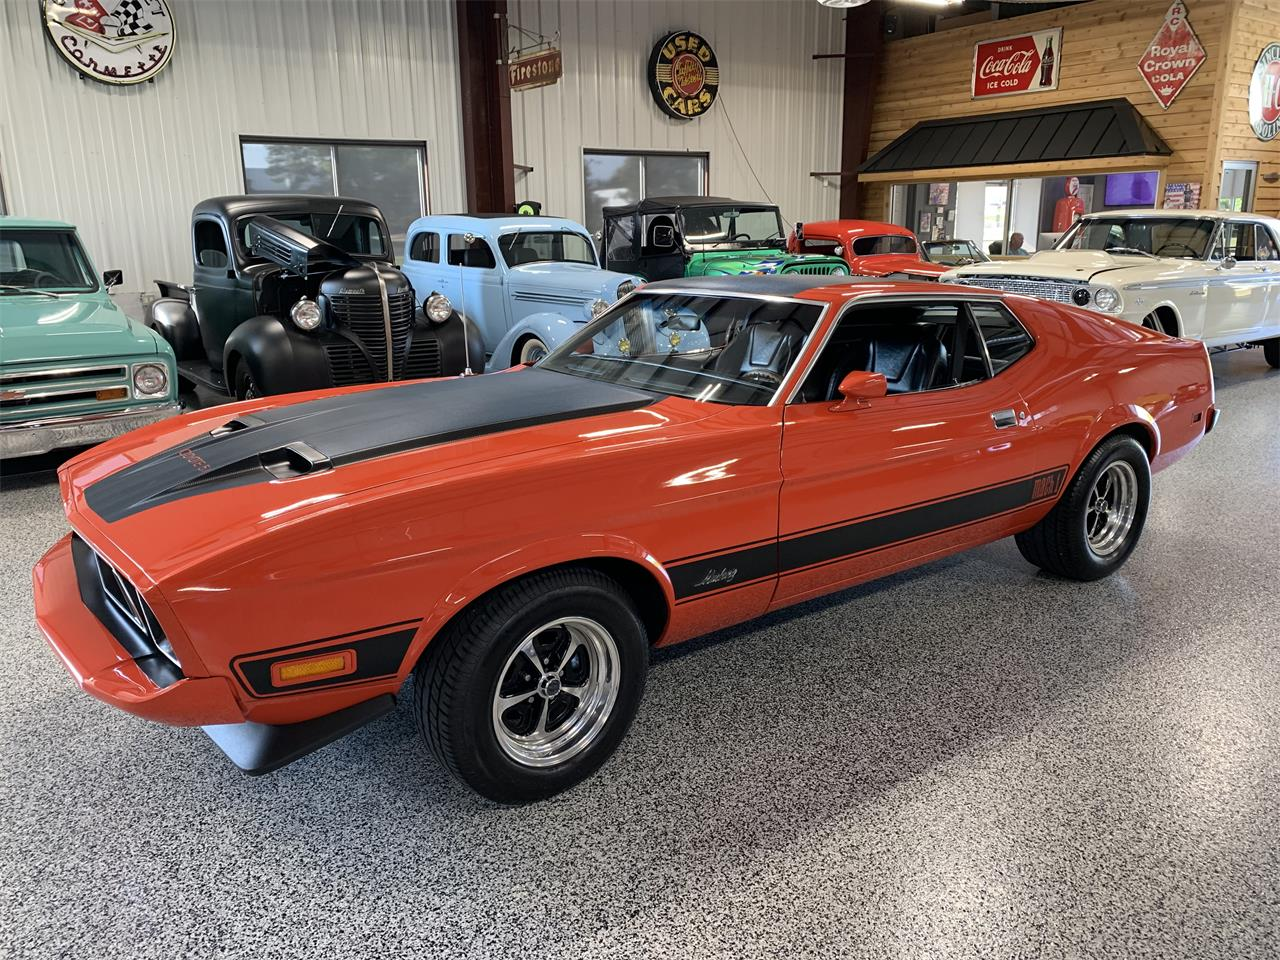 1973 Ford Mustang Mach 1 (CC-1267258) for sale in Hamilton, Ohio